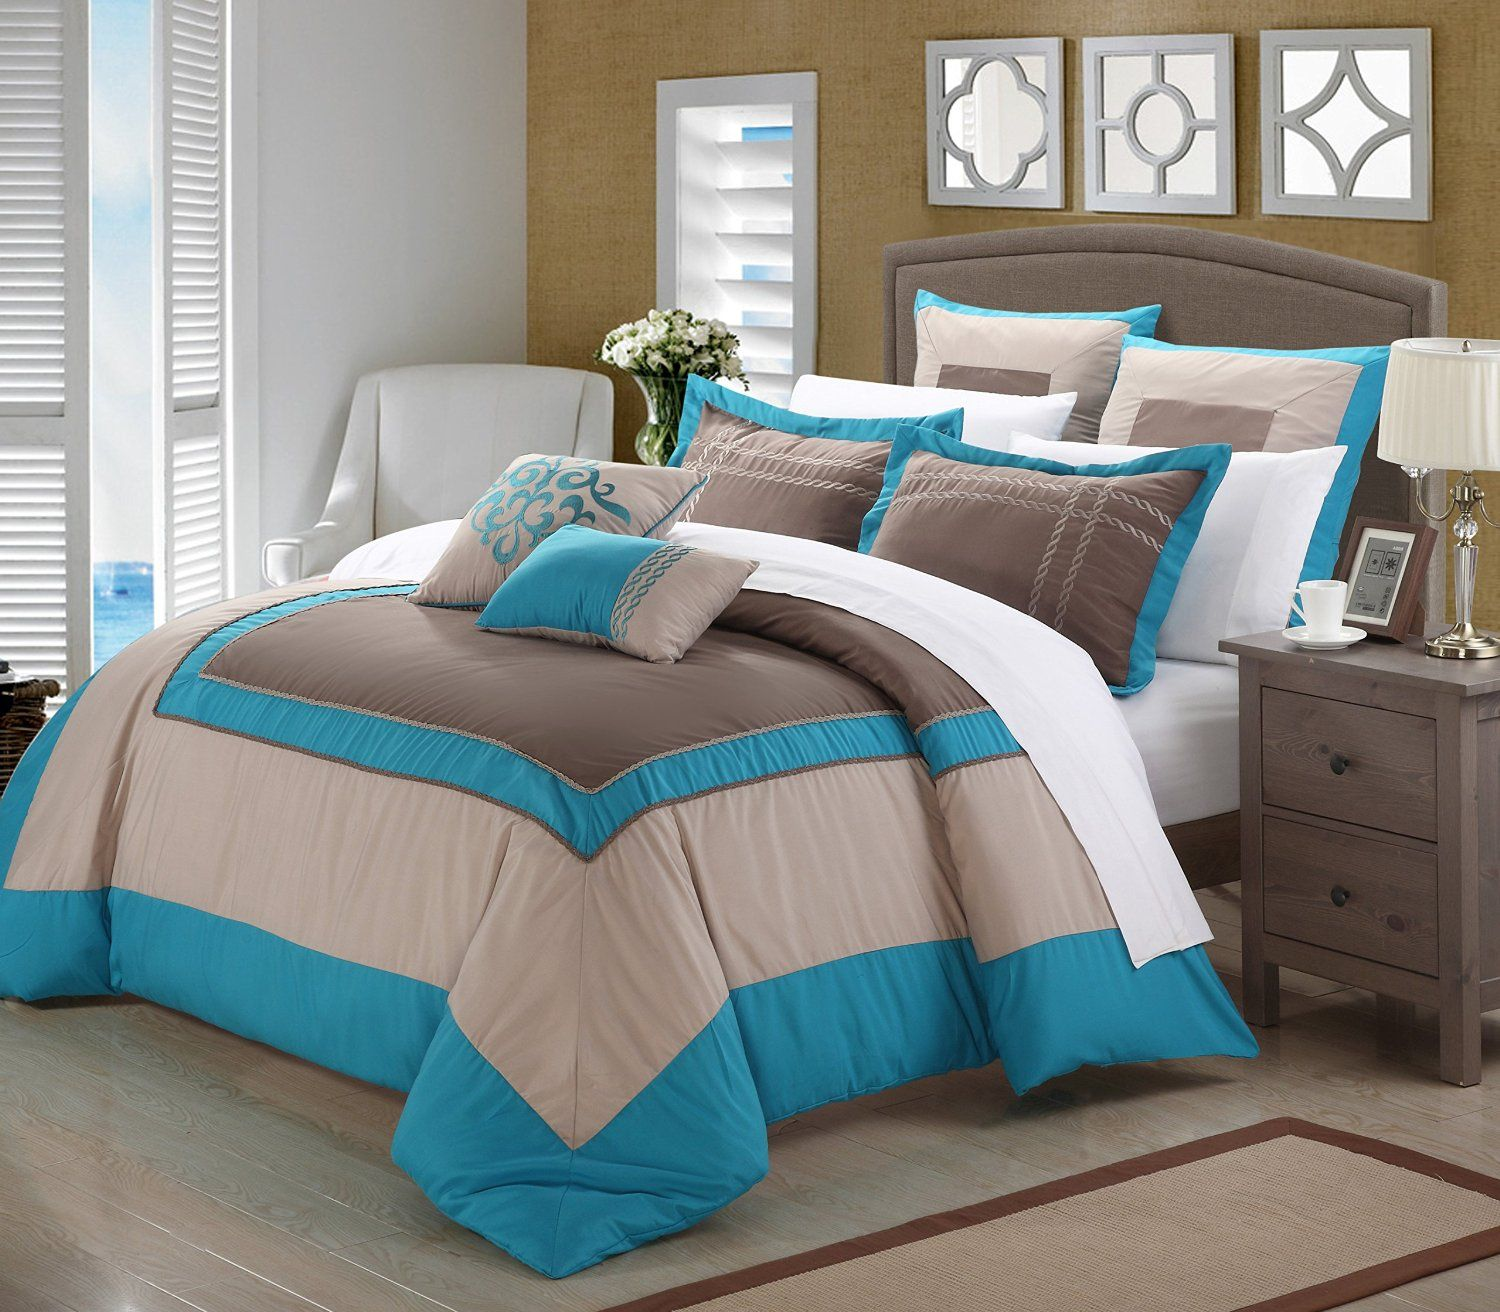 Teal Turquoise And Brown Bedding Bedroom Decor Ideas Bettwäsche Braun Braunes Schlafzimmer Bettdecke